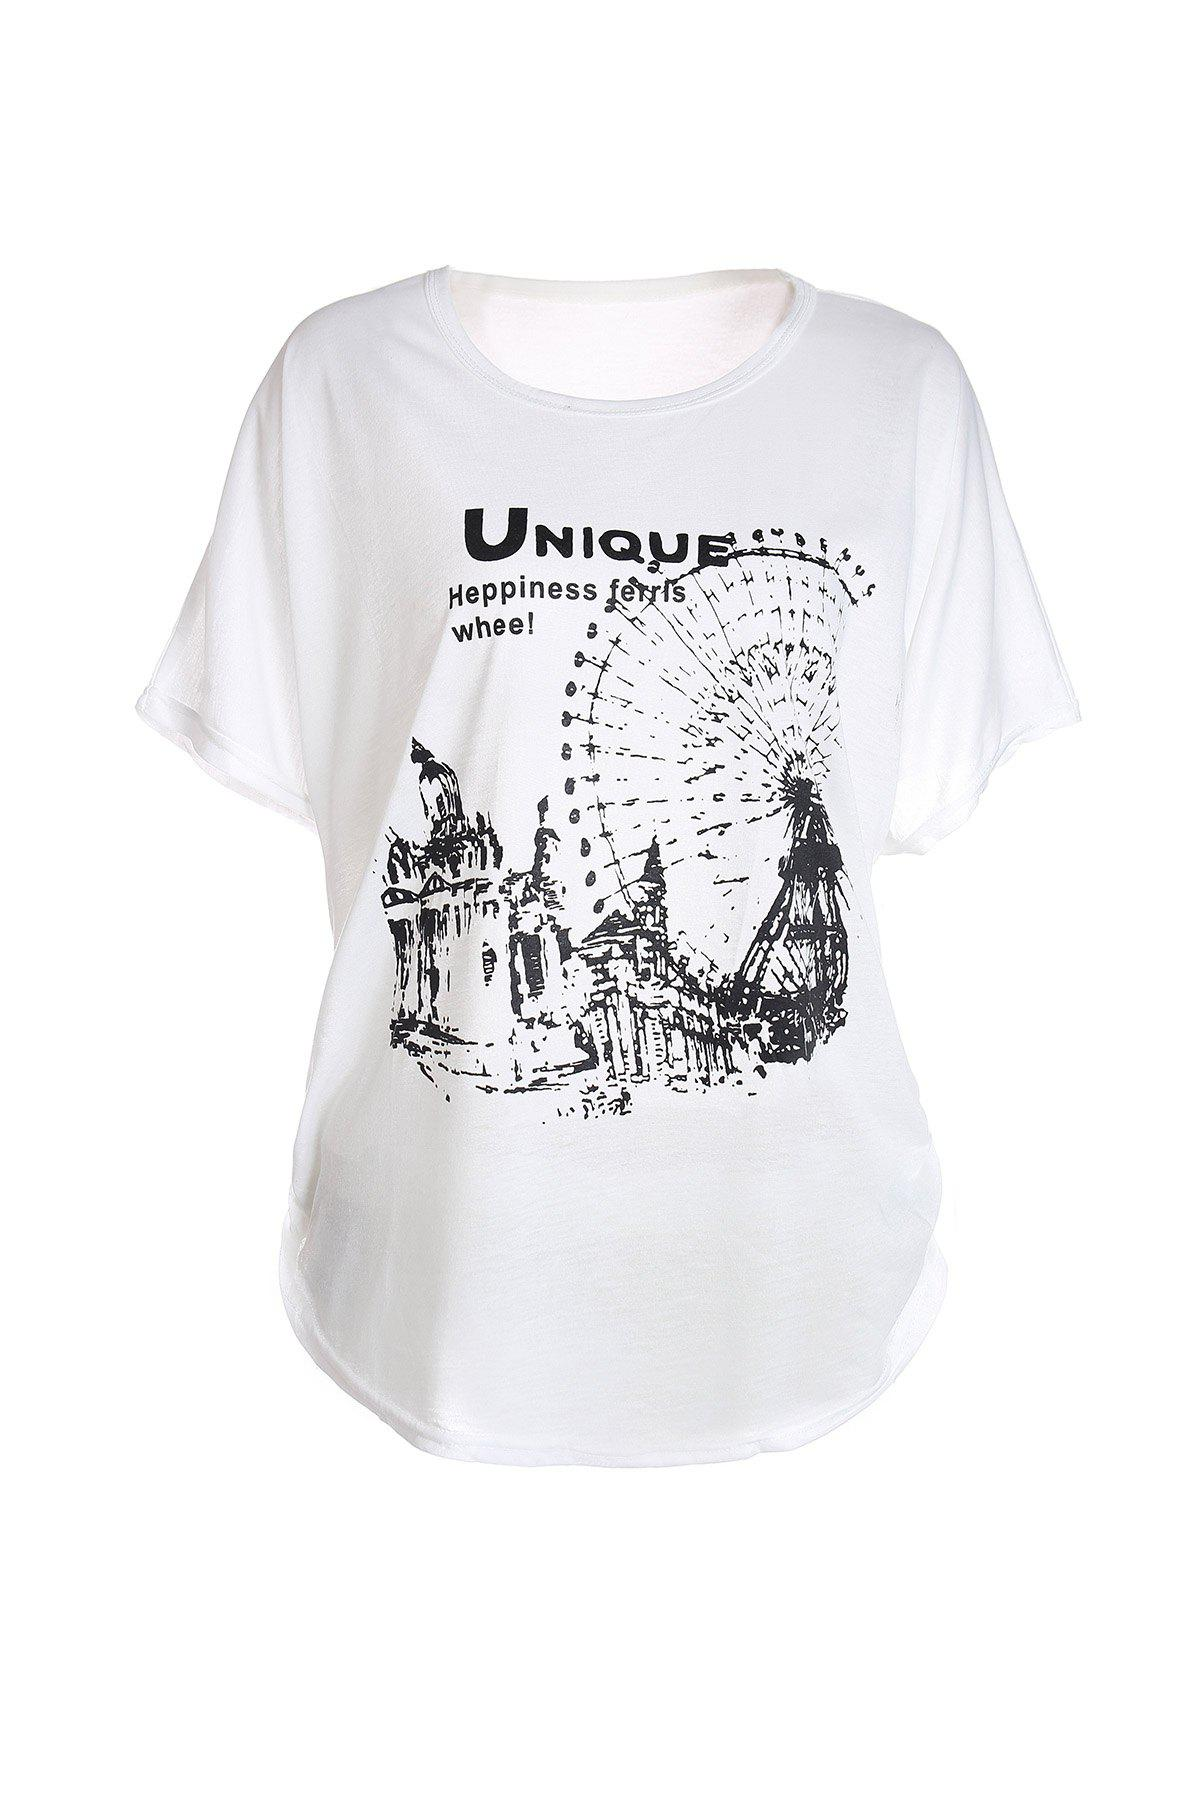 Loose-Fitting Ferris Wheel Pattern Batwing Short Sleeve Women's T-Shirt - WHITE ONE SIZE